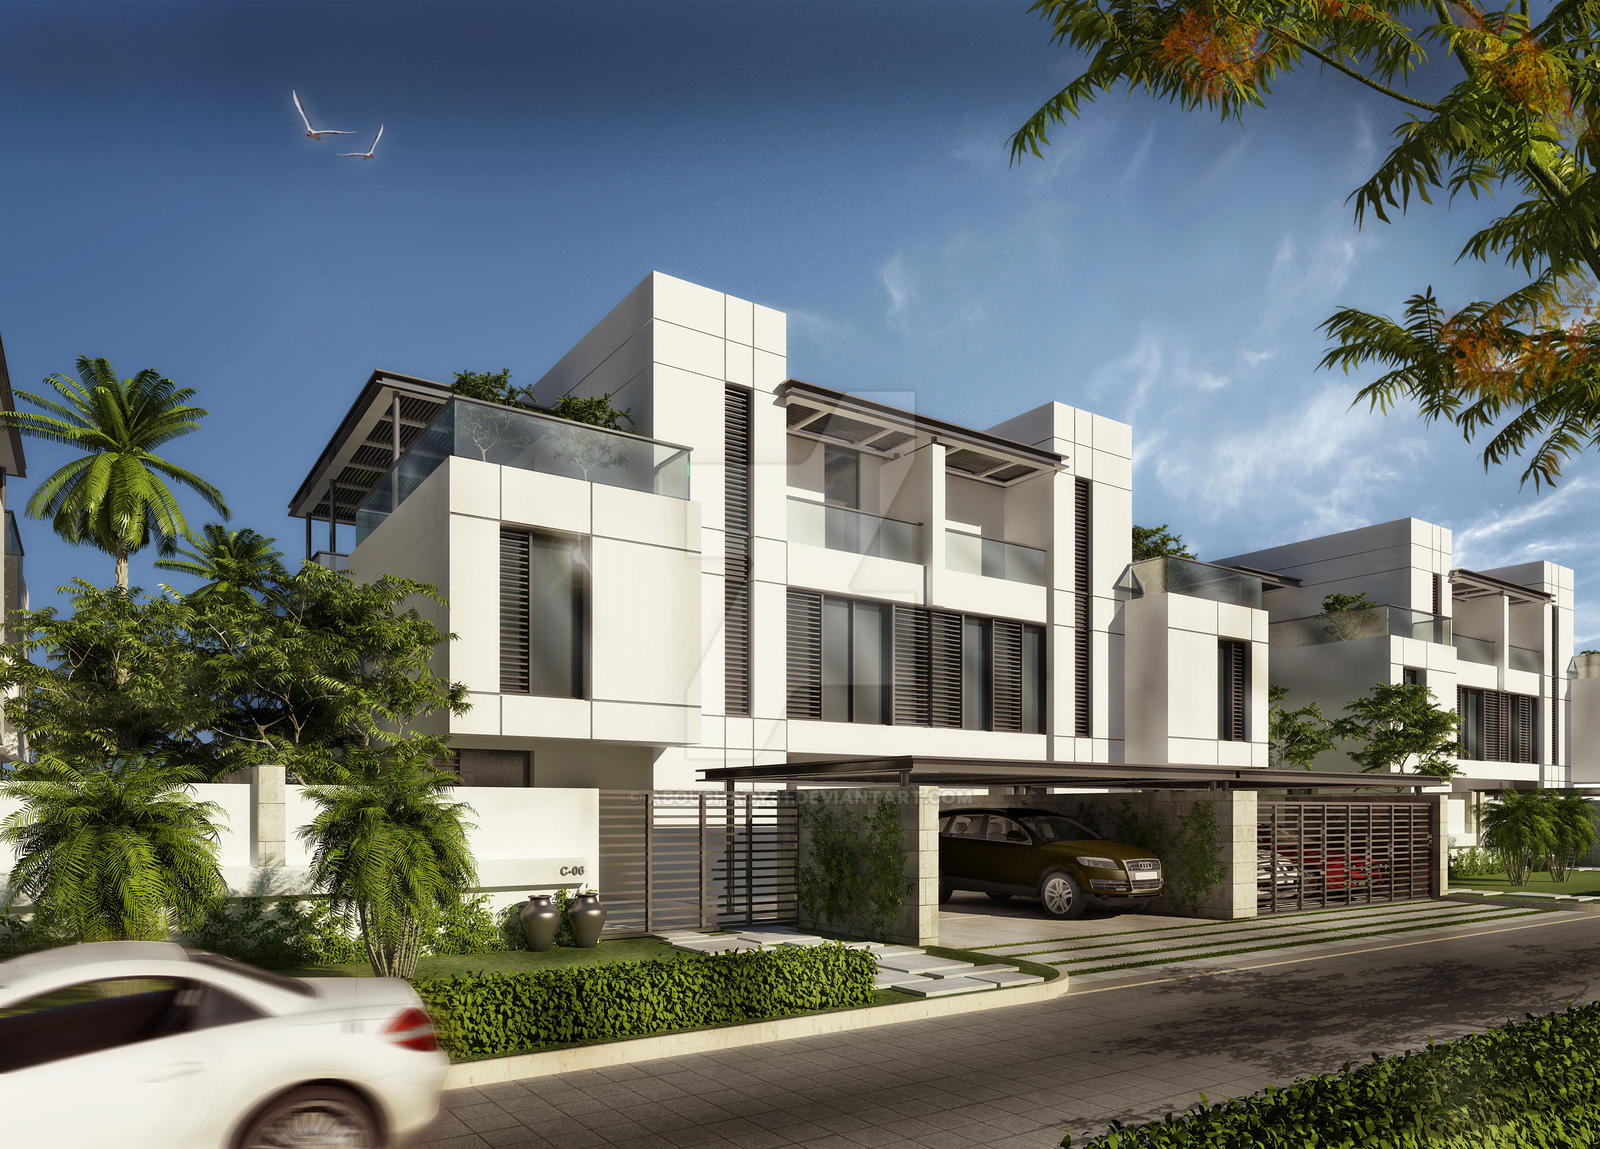 G 2 modern town houses by aboushady81 on deviantart for Town house plans modern